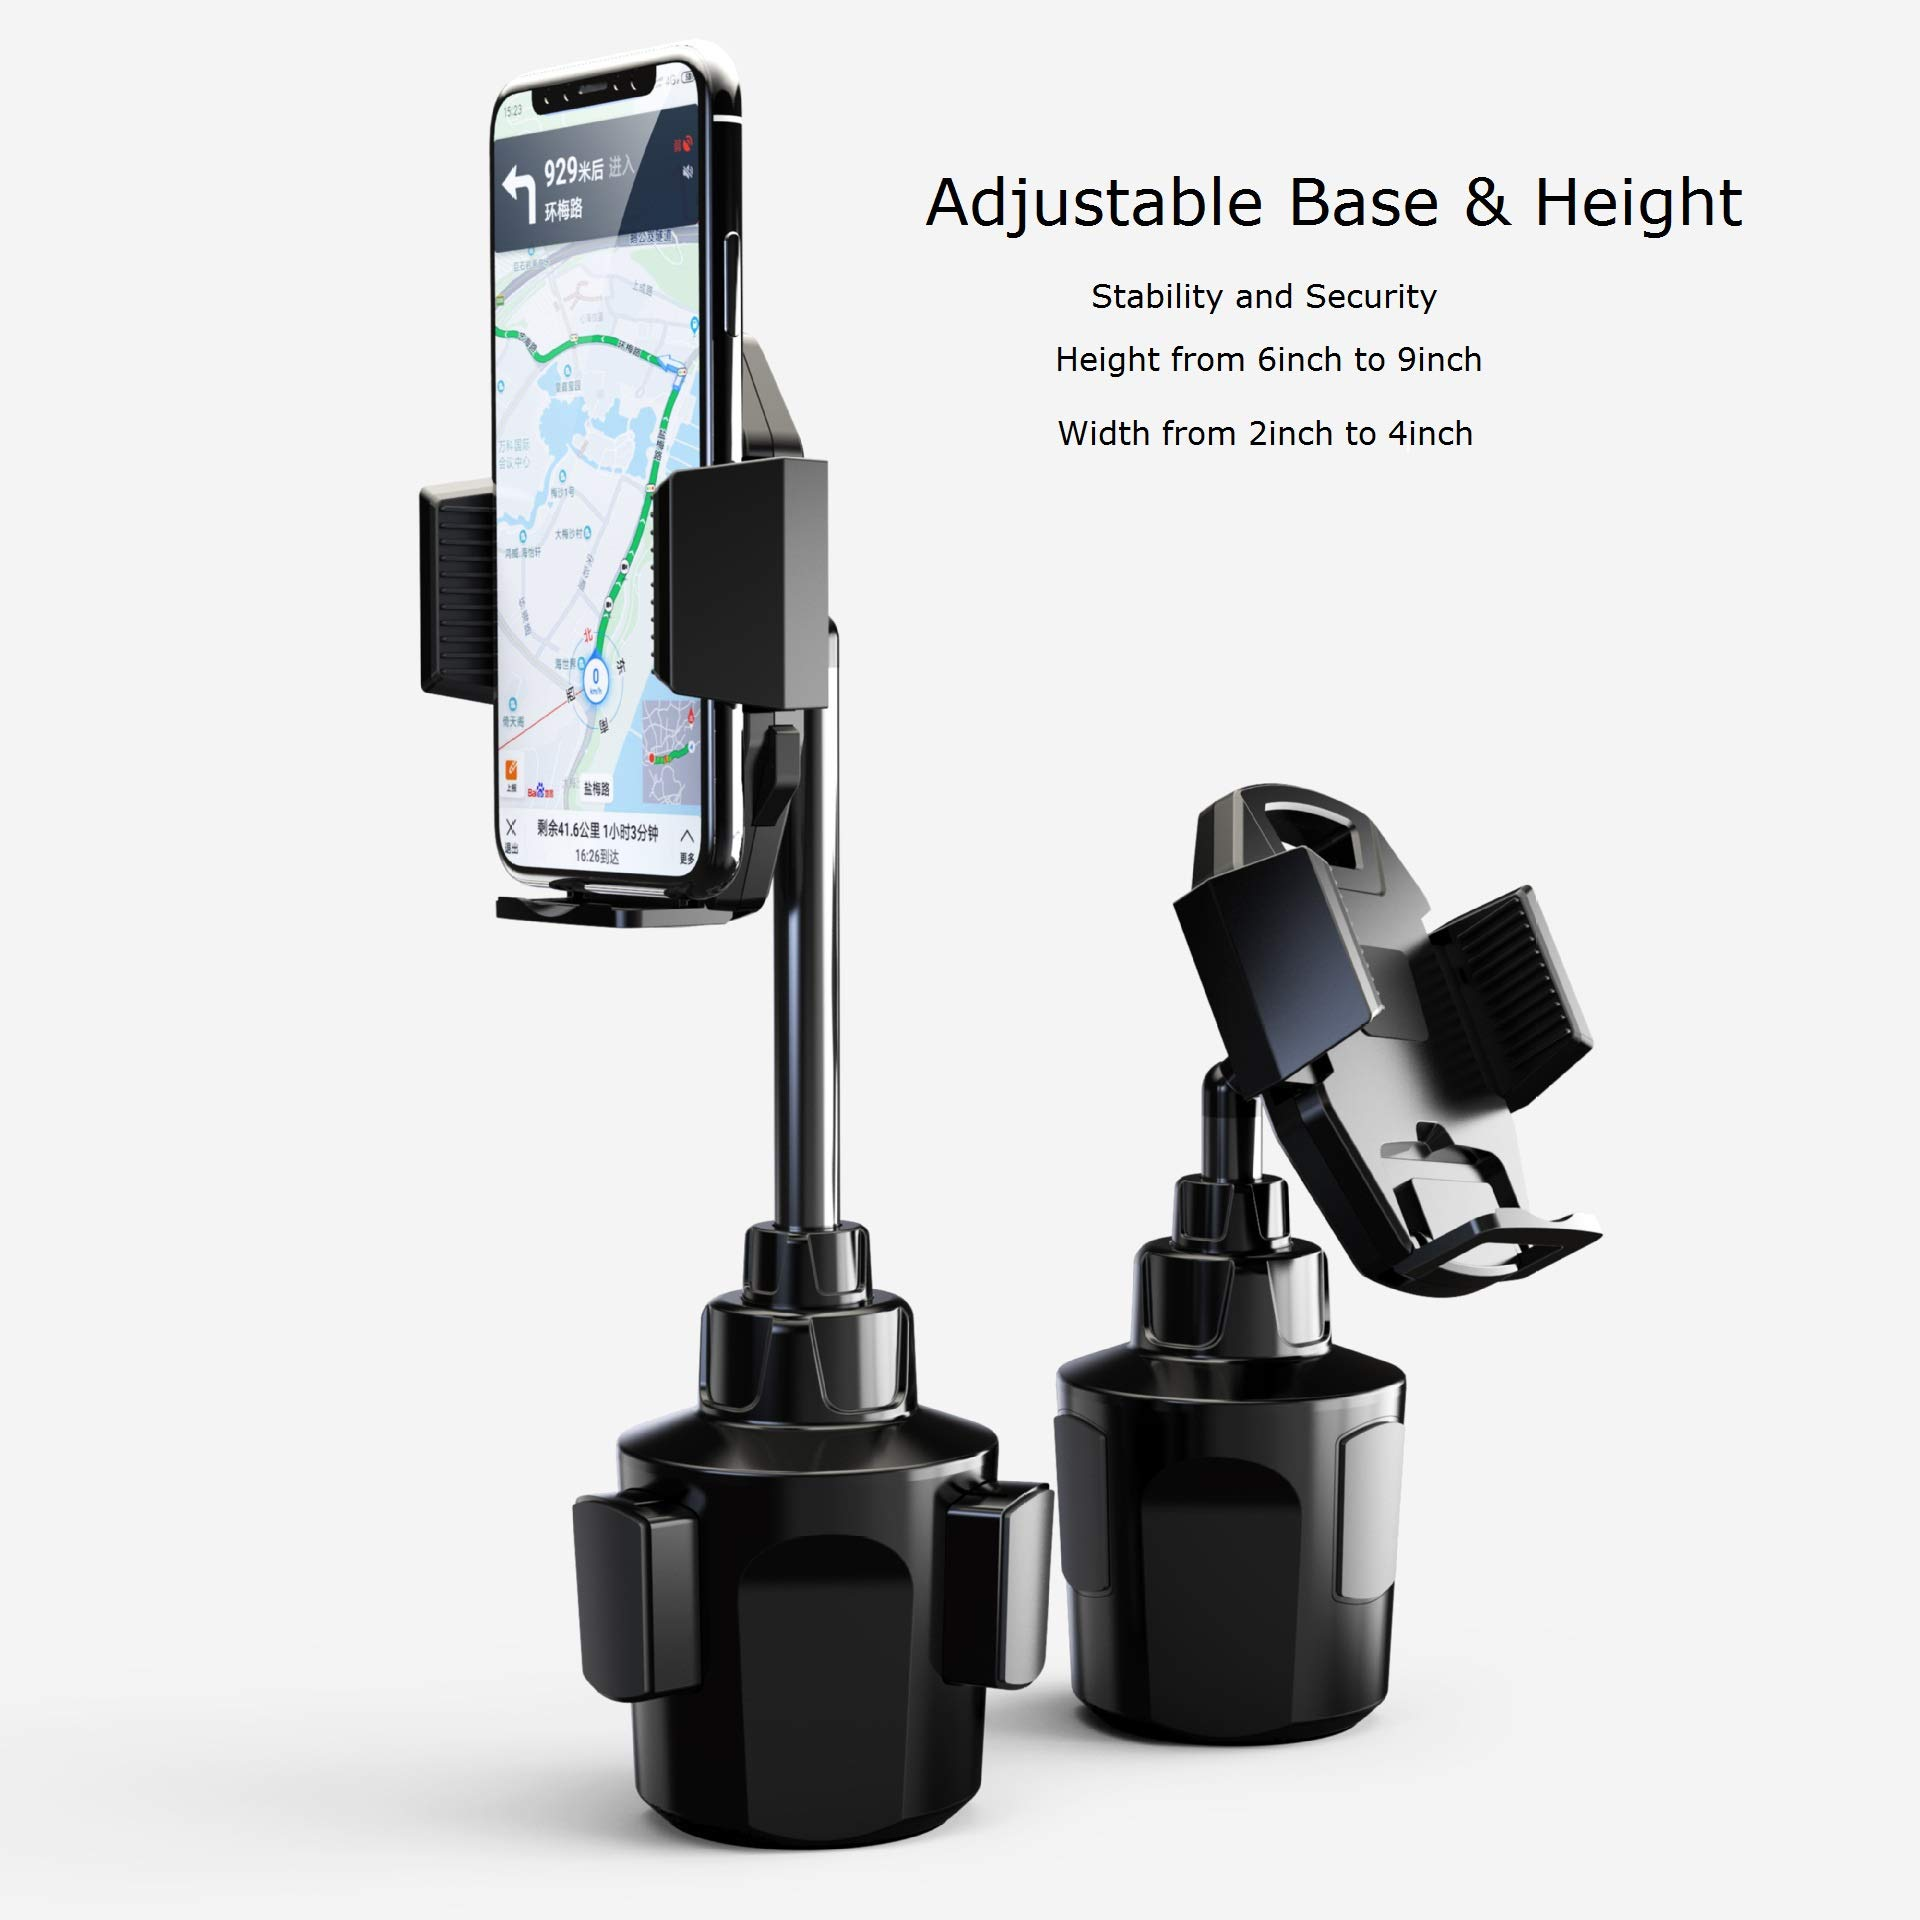 Galaxy Wireless Cup Holder Phone Mount, Height Adjustable Metal Stand Car Phone Cradle Fit for All Smartphones for iPhone 11 Pro/11 Pro Max/XR/XS/XS Max/X/8/7, Galaxy S10/S10 Plus Note 9/Note 10 Plus